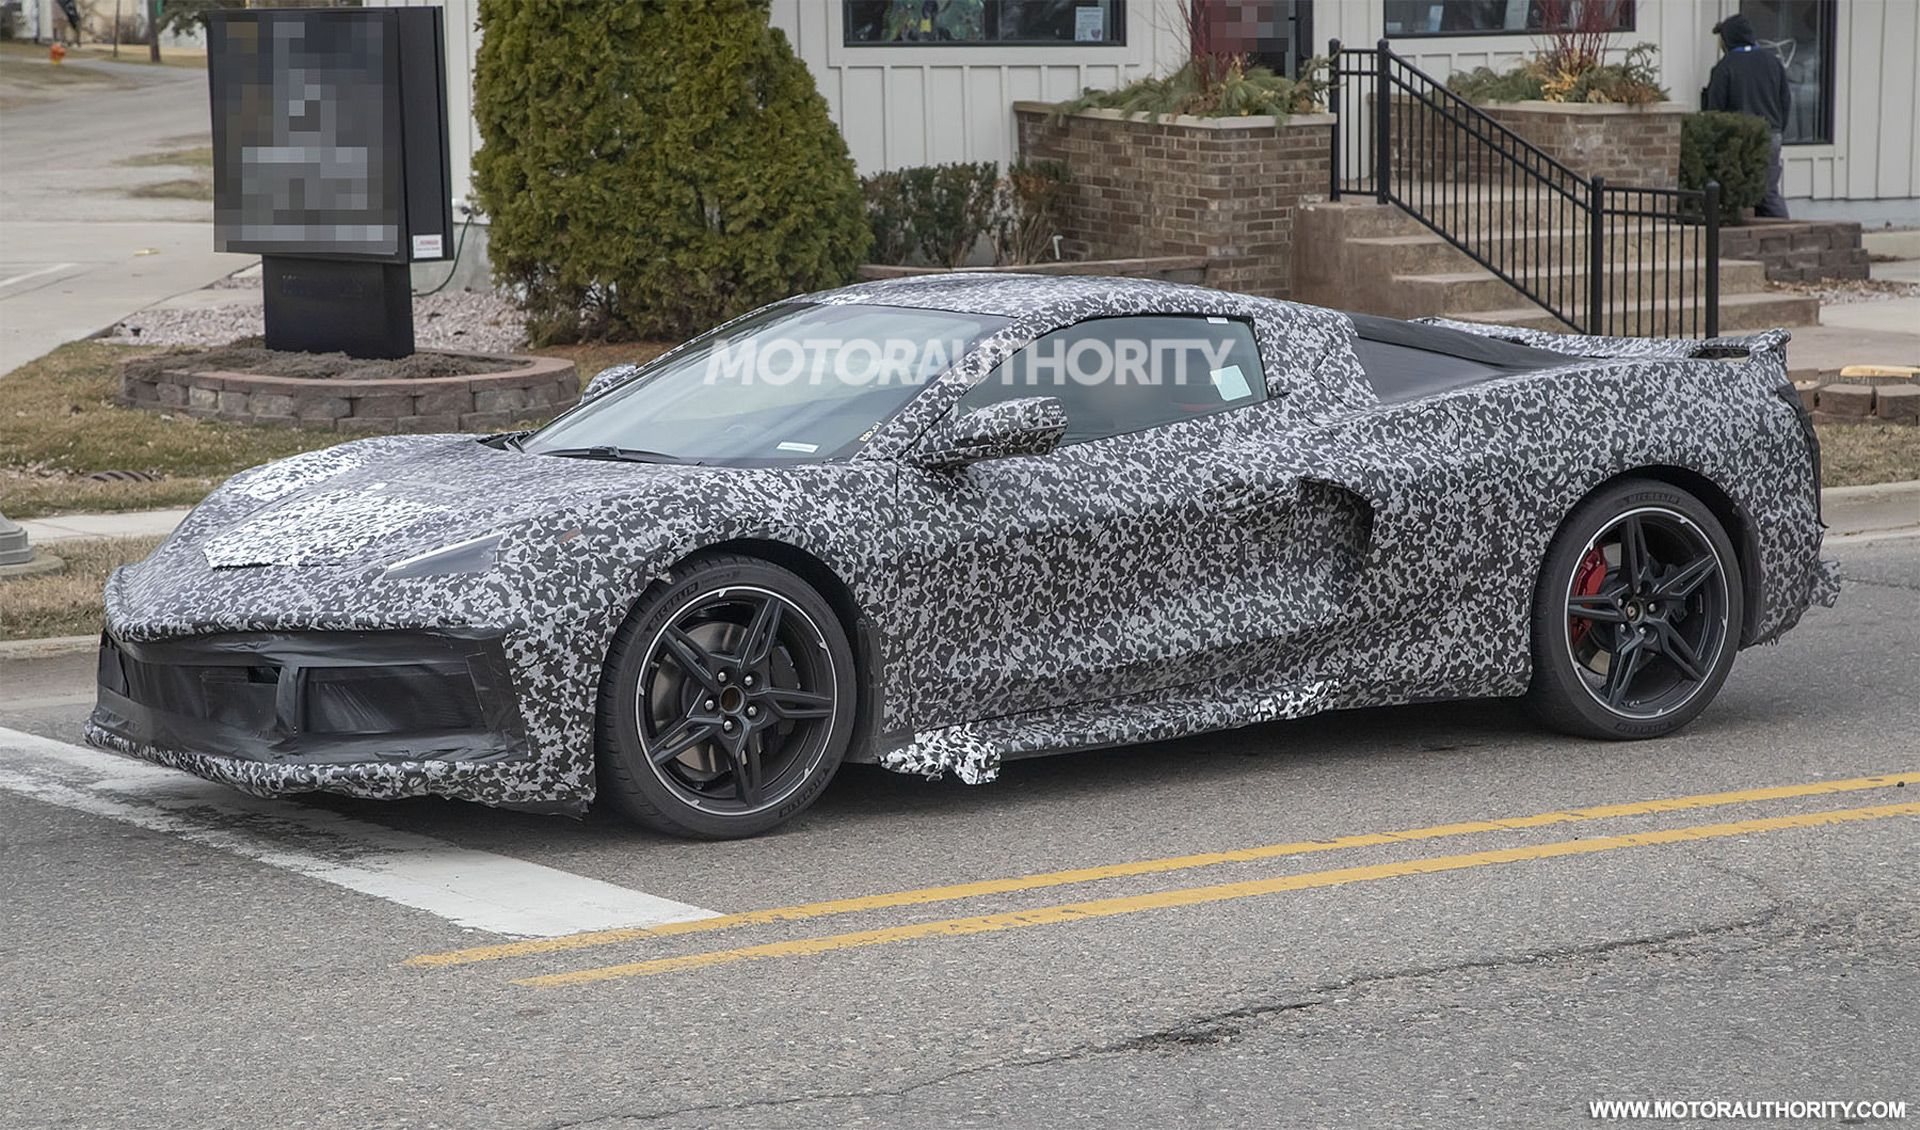 80 The 2020 Chevy Corvette Zora Zr1 Performance And New Engine Di 2020